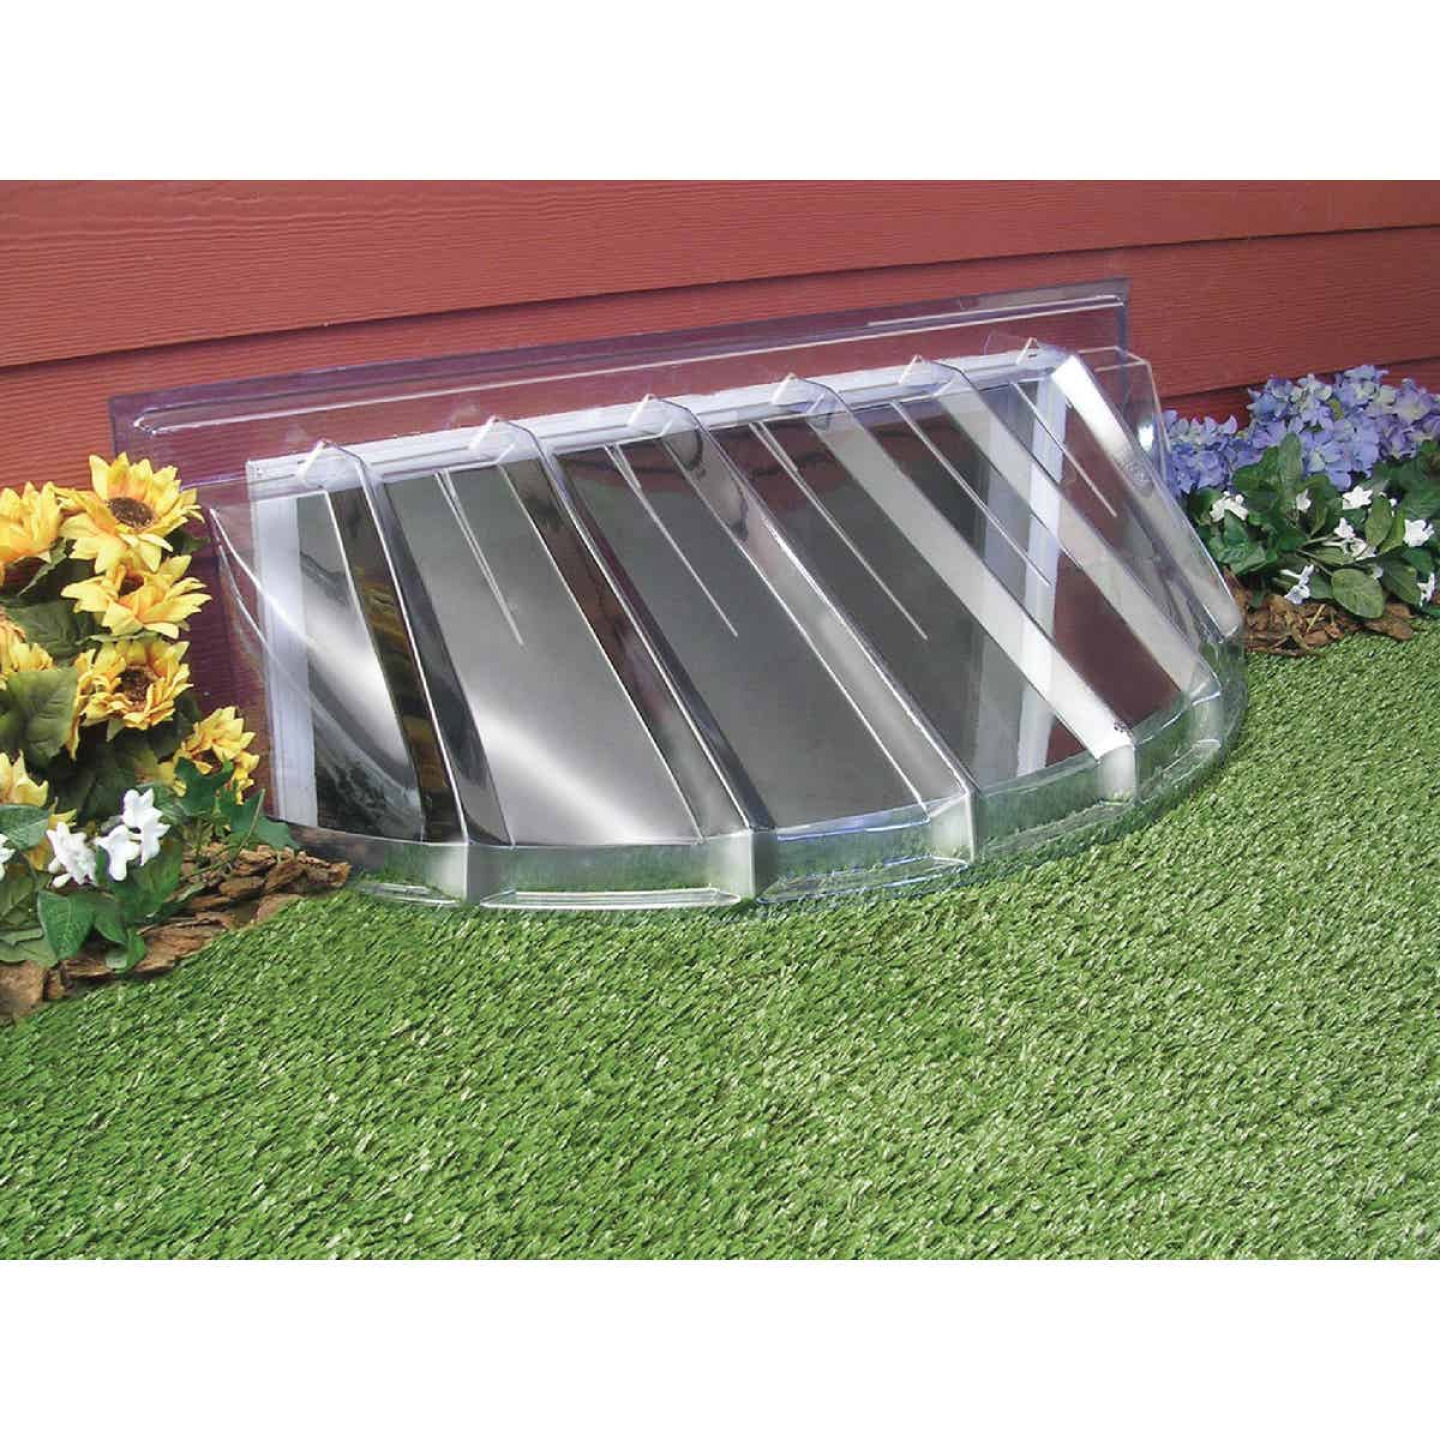 MacCourt 42 In. x 18 In. Plastic Window Well Cover Image 1